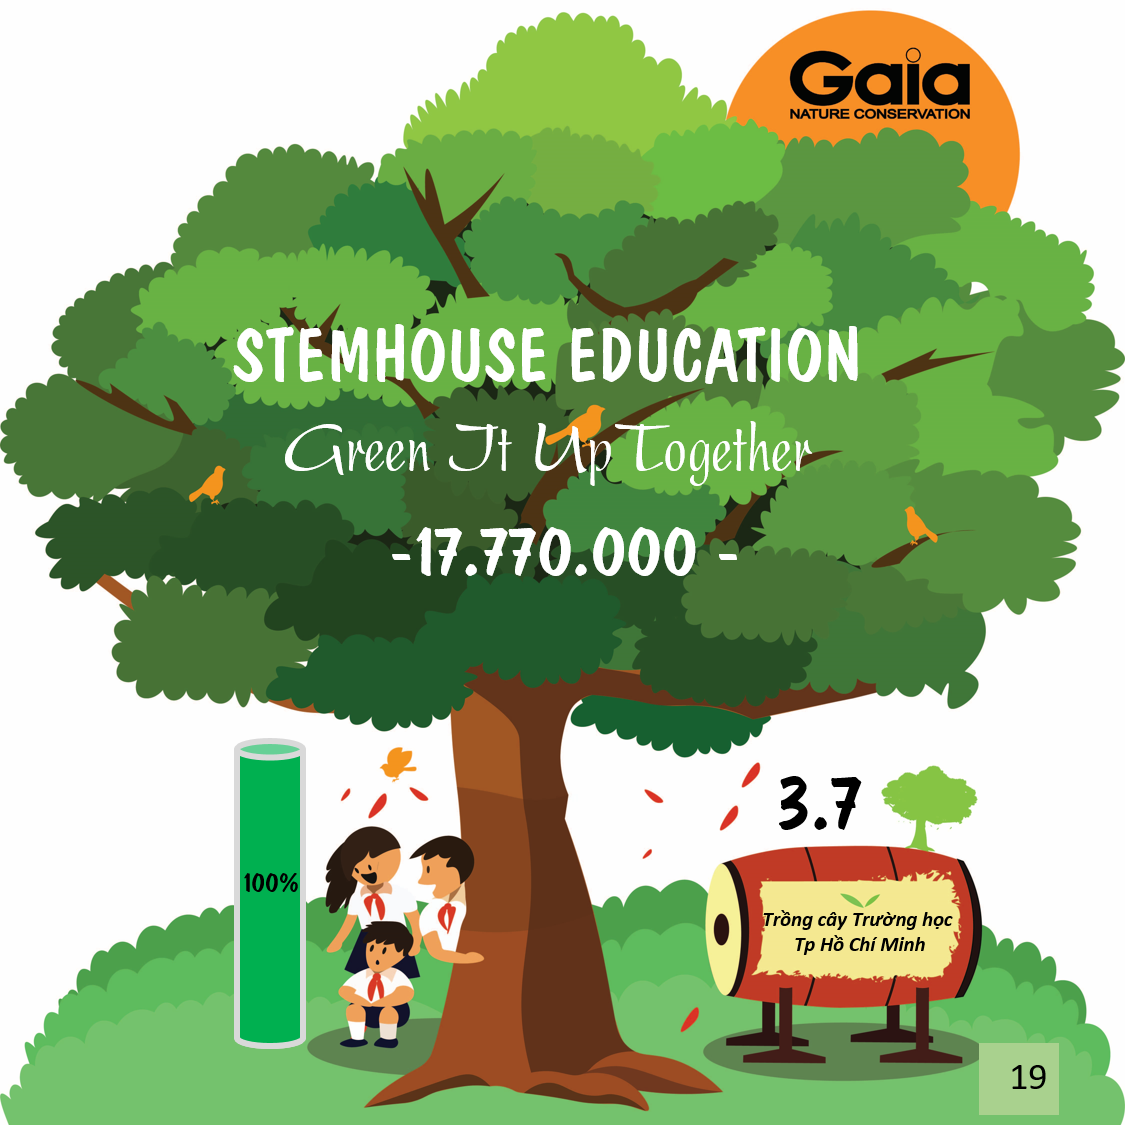 STEMHOUSE EDUCATION _ GAIA _ GREEN IT UP TOGETHER